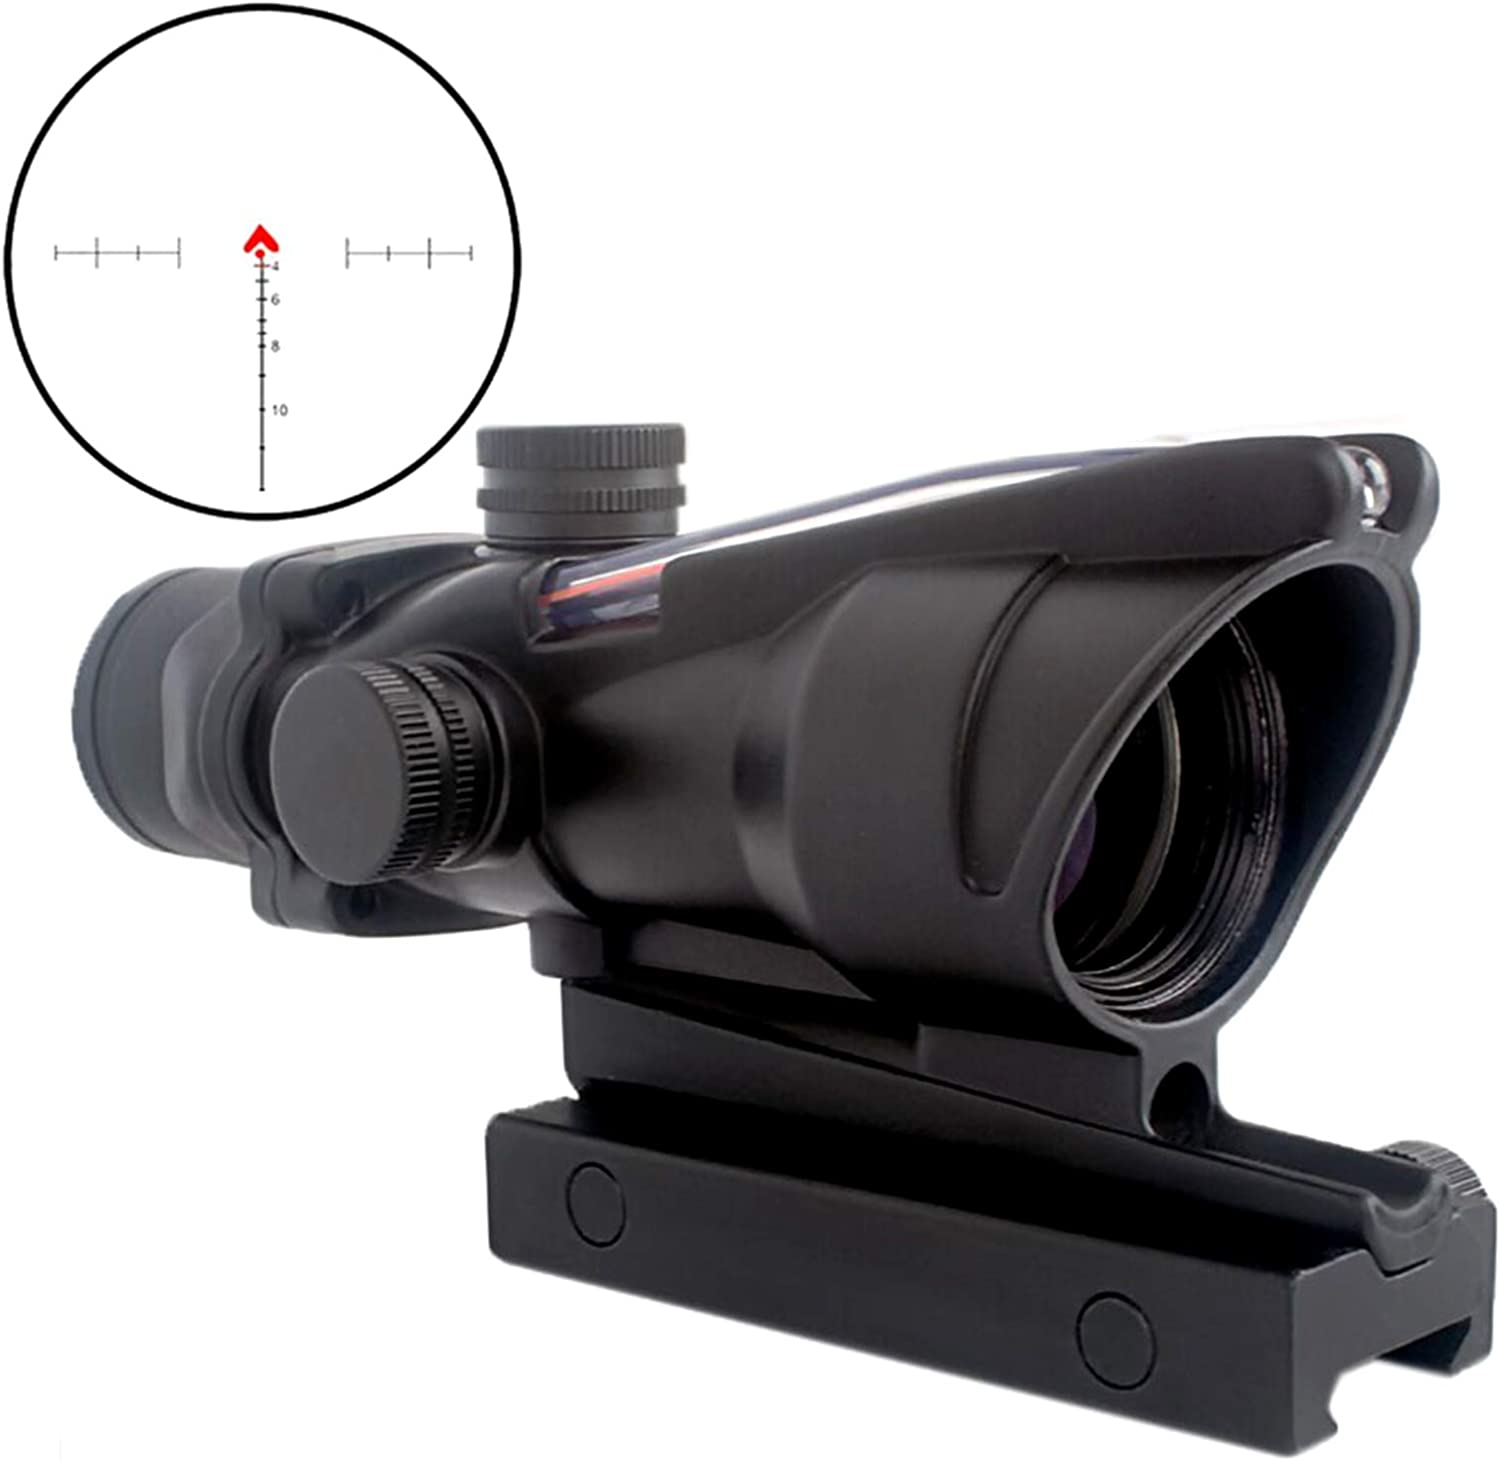 3. CRUSHUNT 4x32 Red Chevron Glass Etched Reticle Real Fiber Optics Tactical Optical Sights Scope